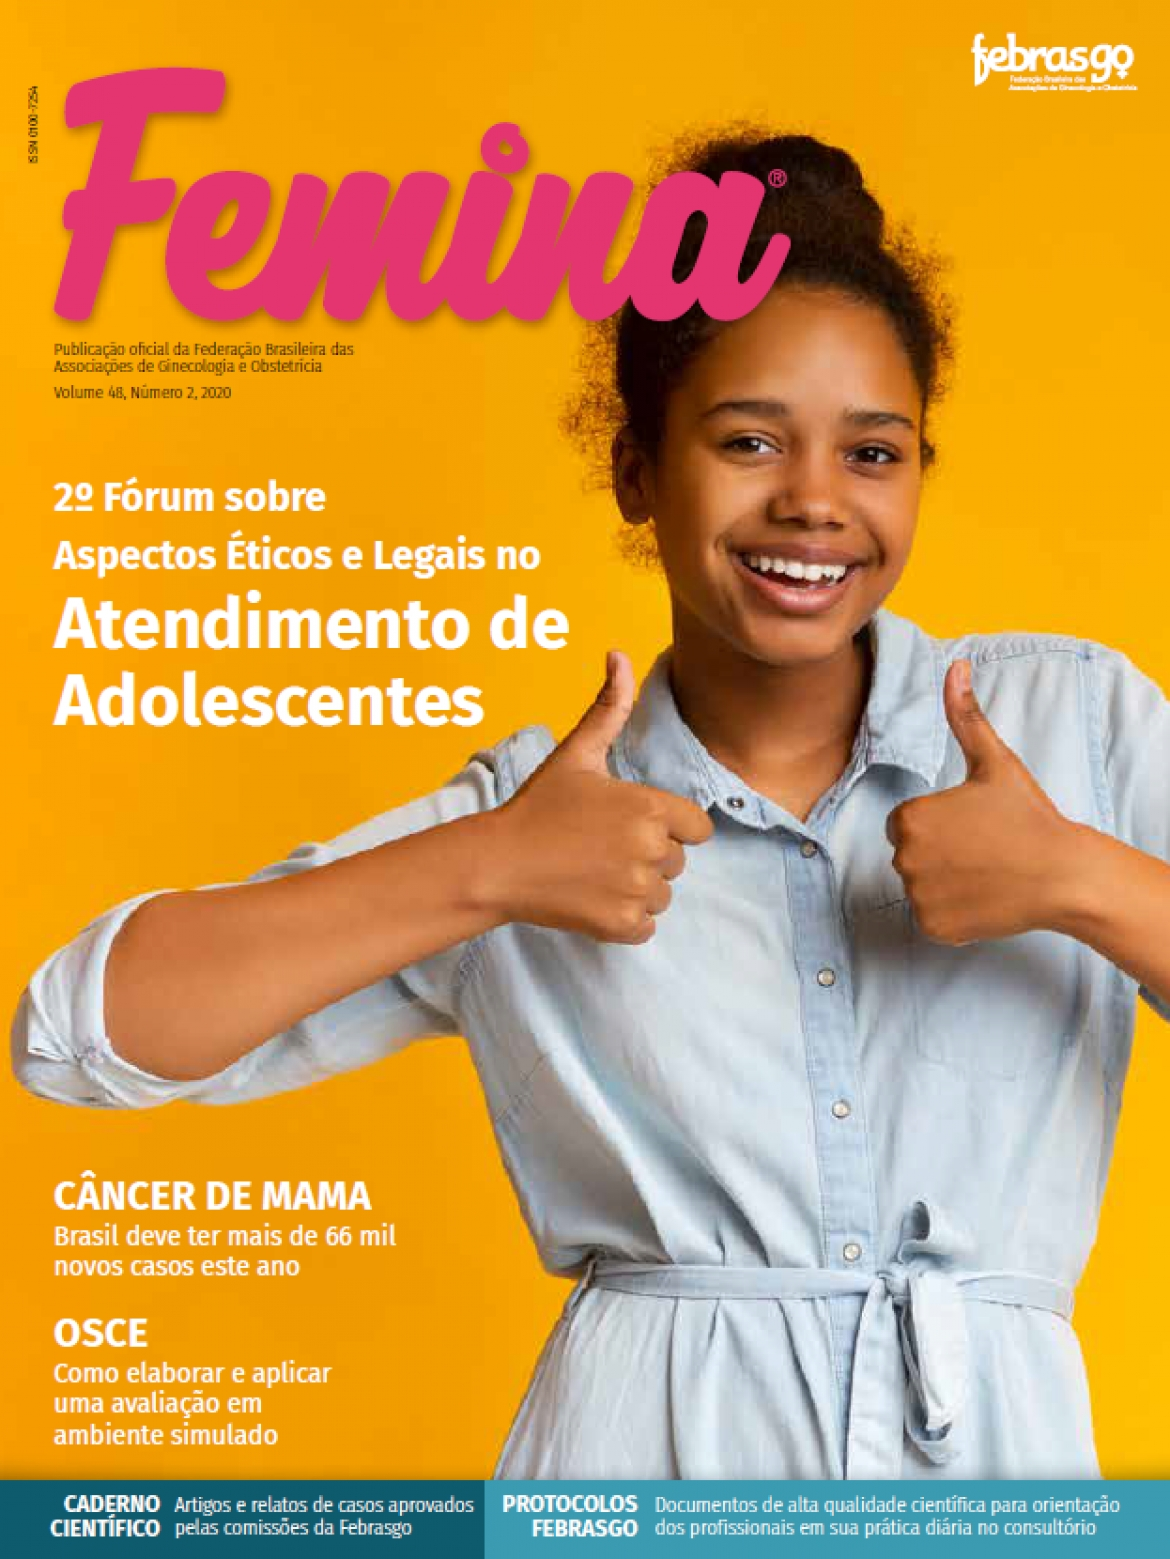 REVISTA FEMINA - 2020 | VOL 48 | Nº 02